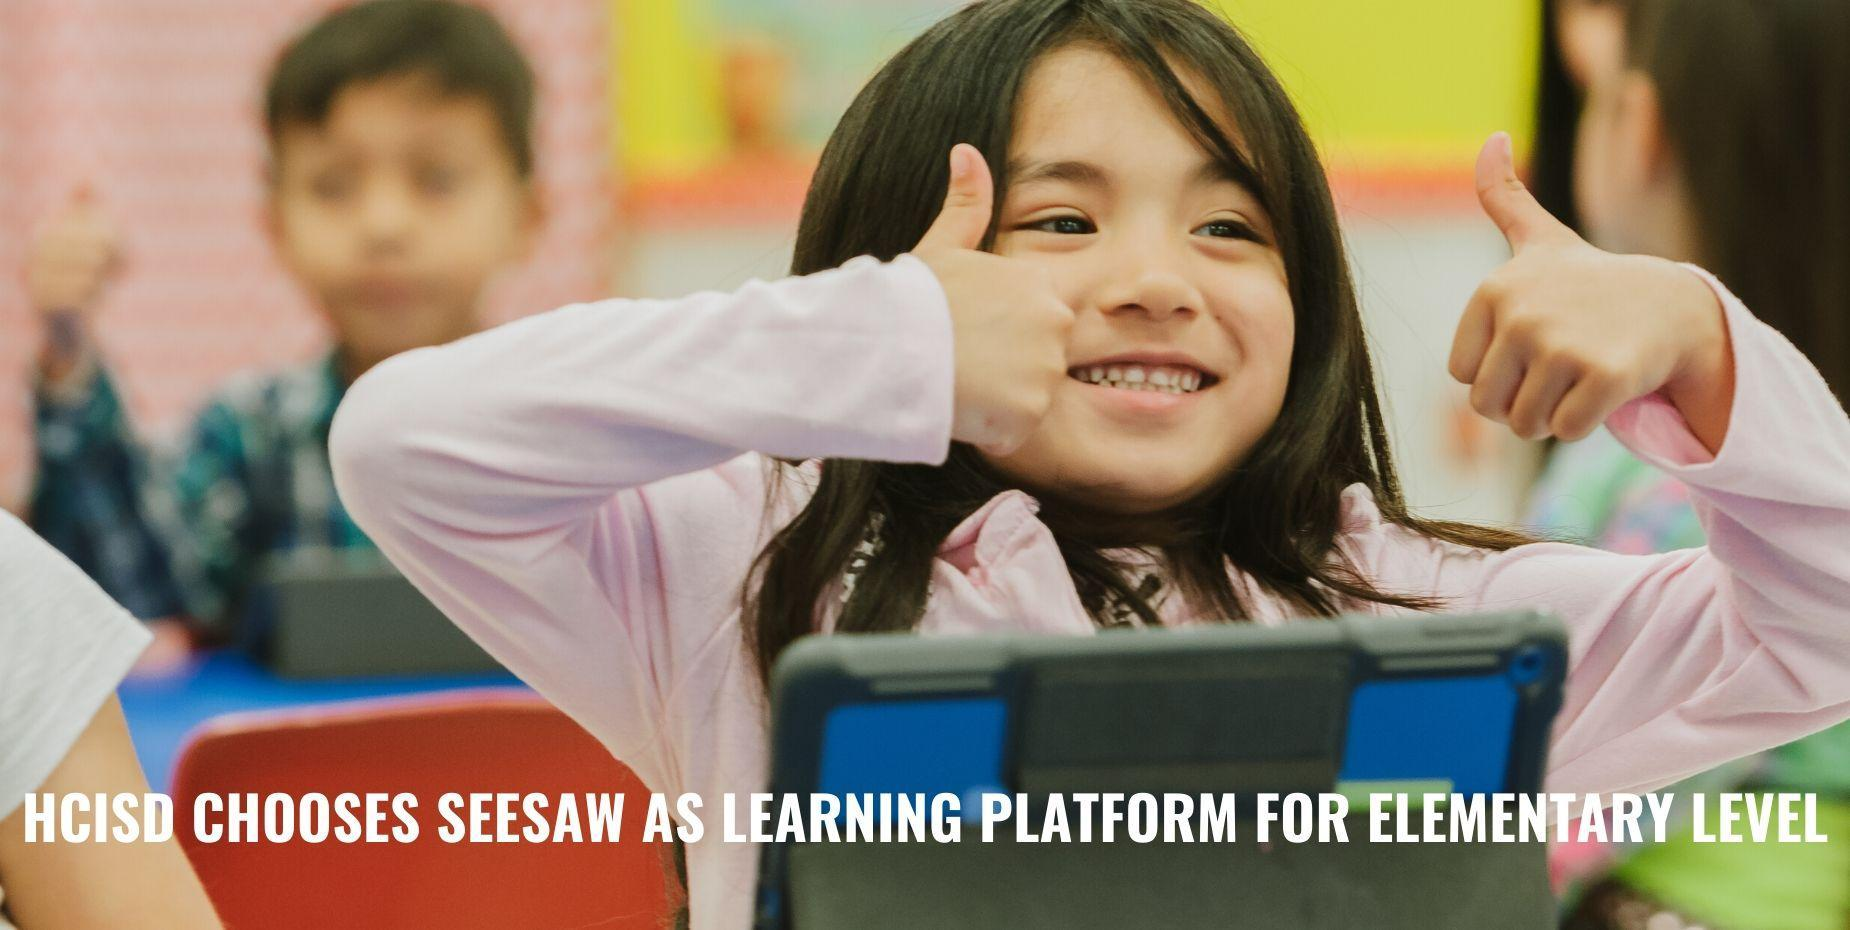 HCISD chooses Seesaw as learning platform for elementary level